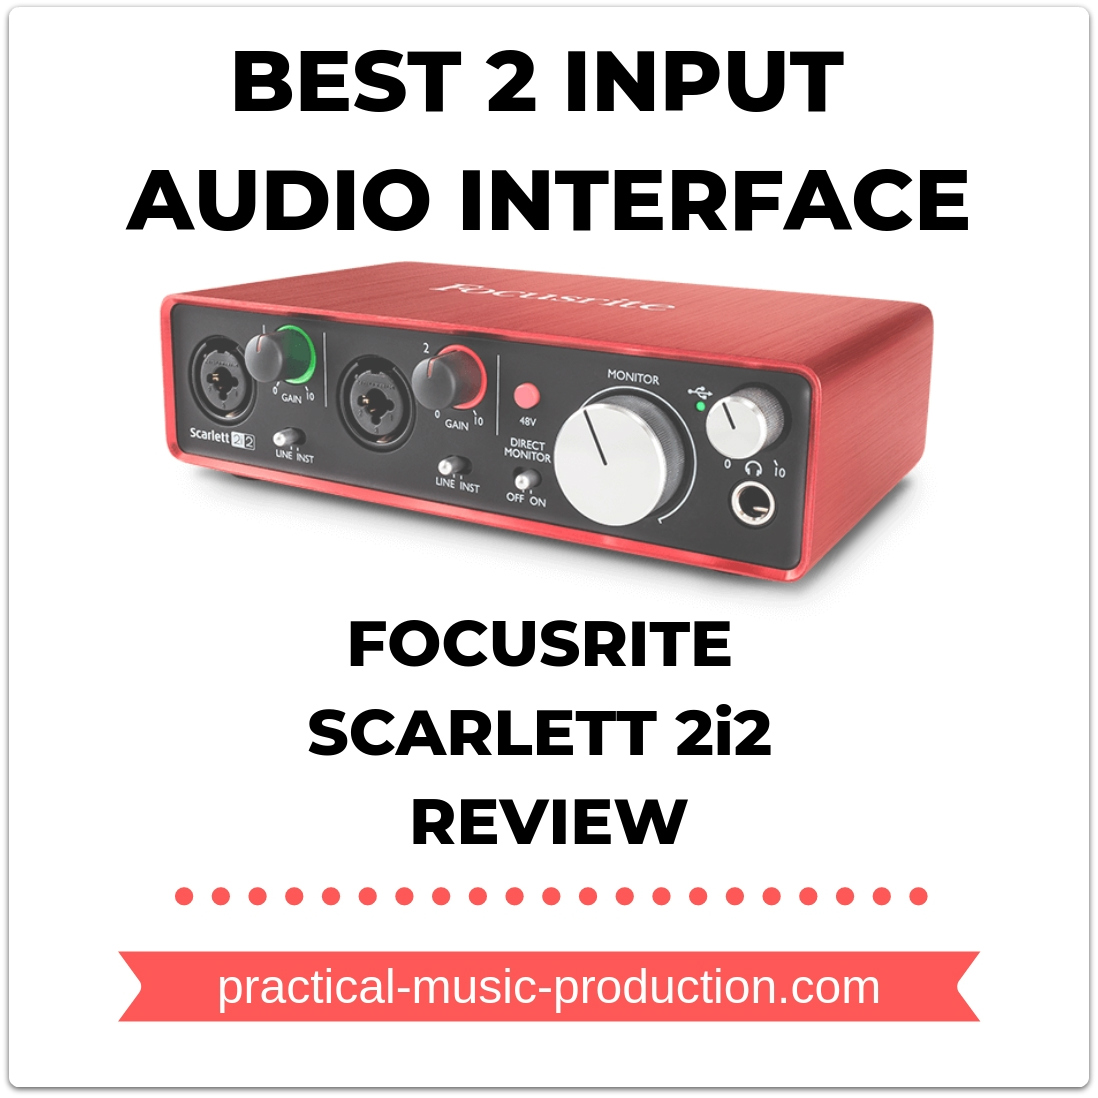 The best 2 input audio interface is by far the Focusrite Scarlett 2i2